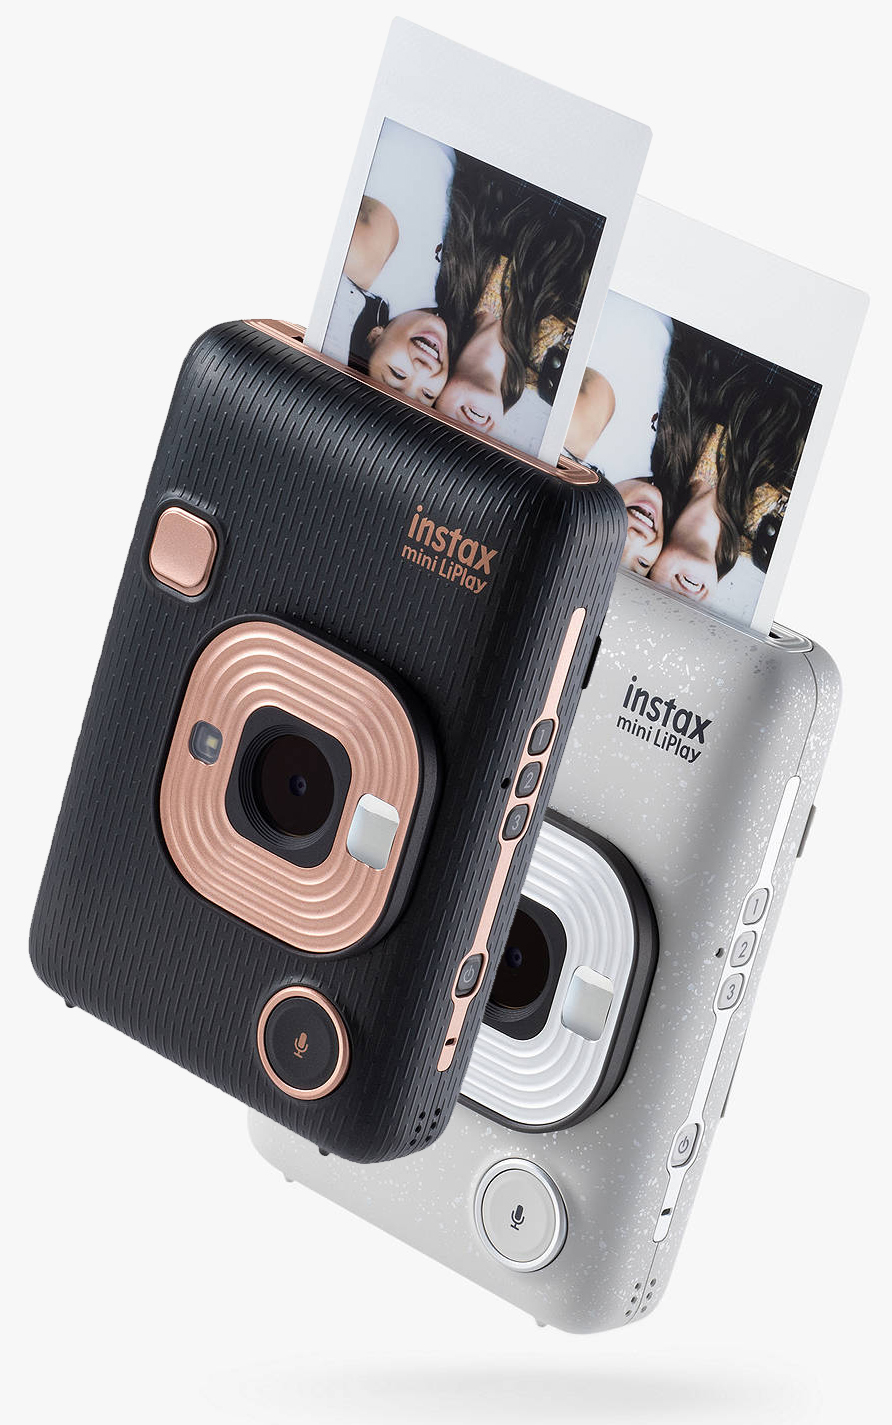 Gifts for Bloggers 2020. Instant Cameras with Printing 2020. Best Camera Gifts 2020. Instax Instant Cameras 2020. Gifts for Instagram addicts 2020. Gifts for Instagram Addicts 2020. Selfie Taker Gifts 2020. Gifts for Teens 2020. Fujifilm Instax Camera Gift ideas 2020. Gifts for Tweens 2020. Gifts for teenagers 2020.